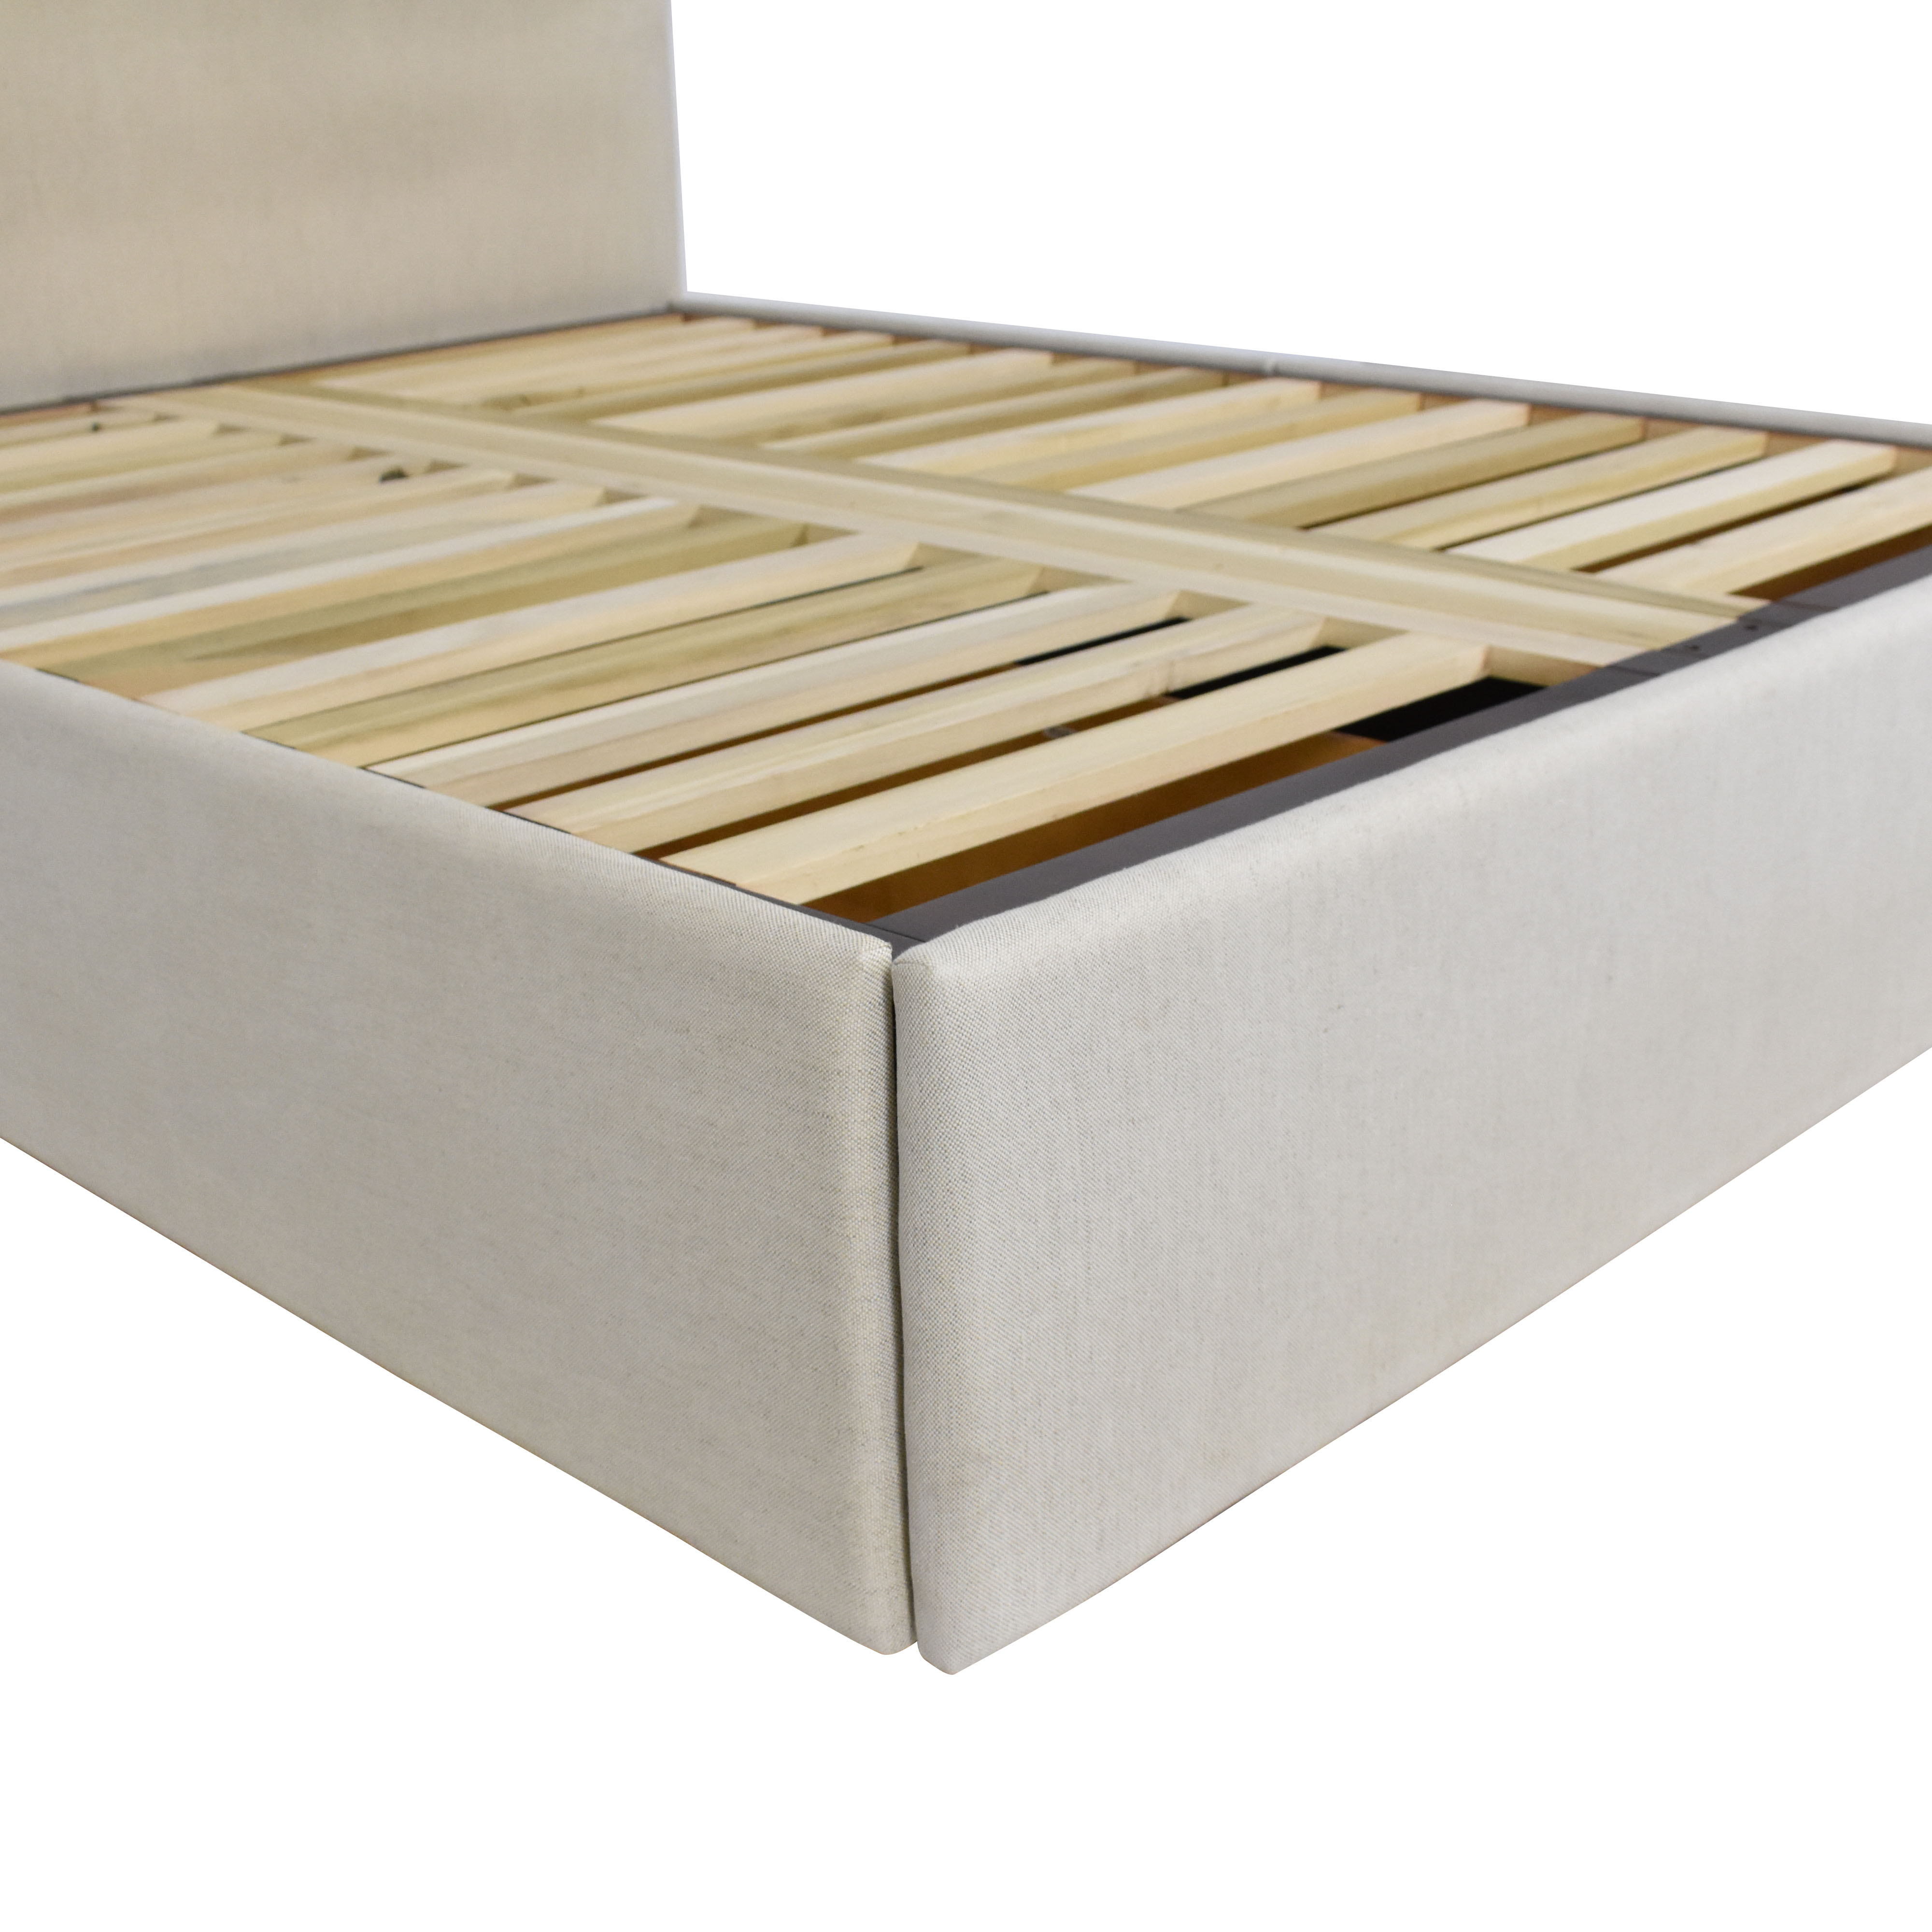 Pottery Barn Pottery Barn Raleigh Upholstered Queen Storage Bed beige